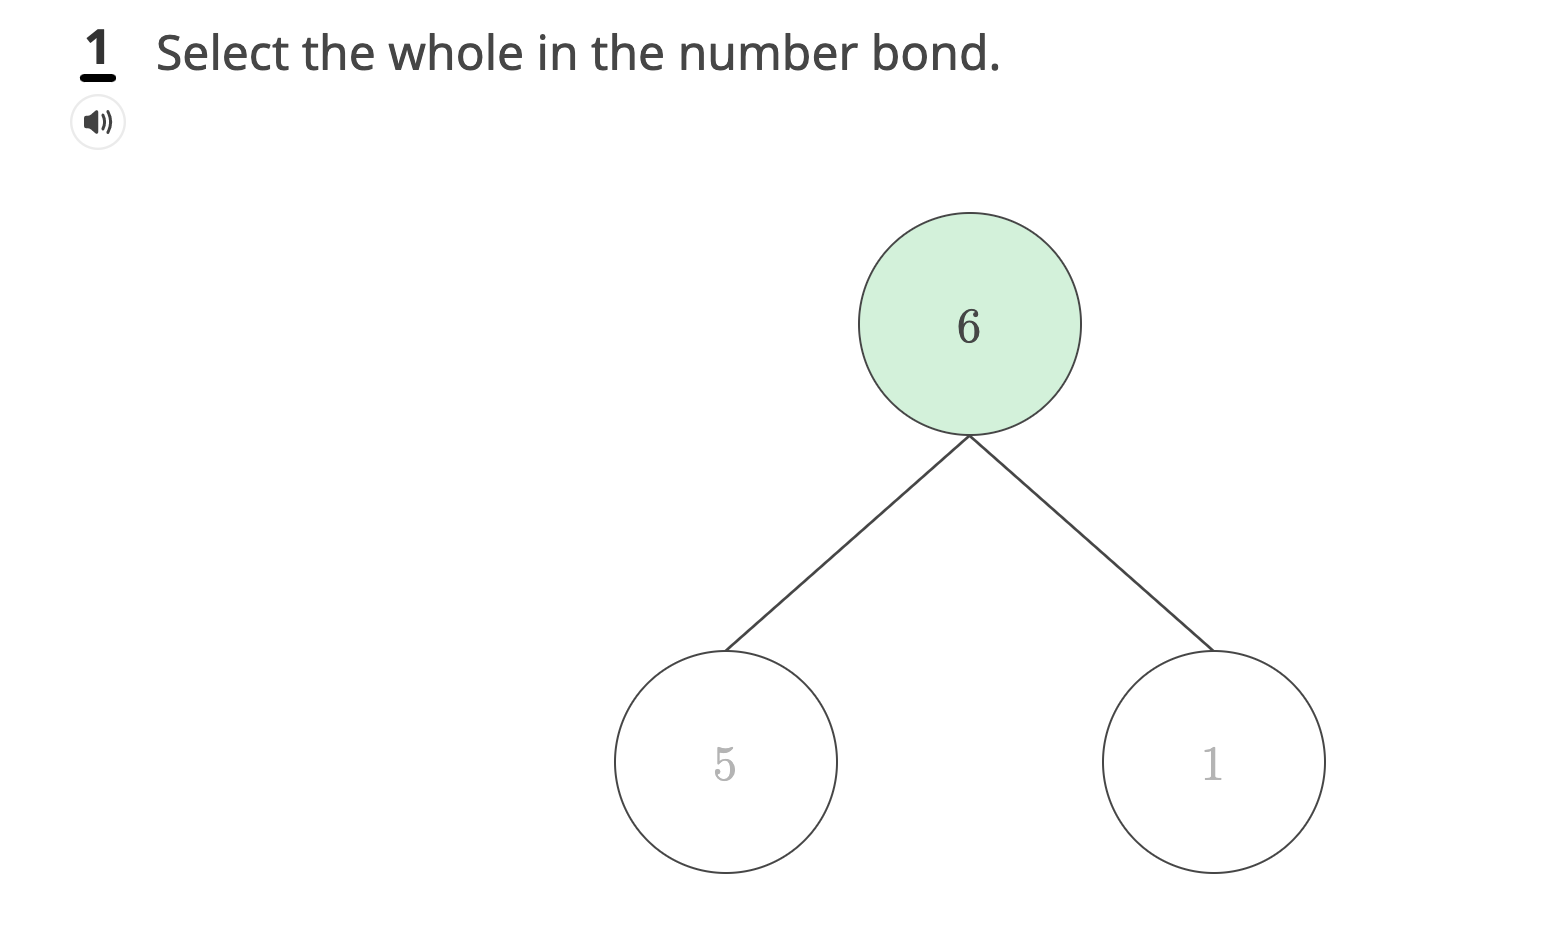 Sample grade 1 problem depicting the problem type of selectable numbers and bonds.